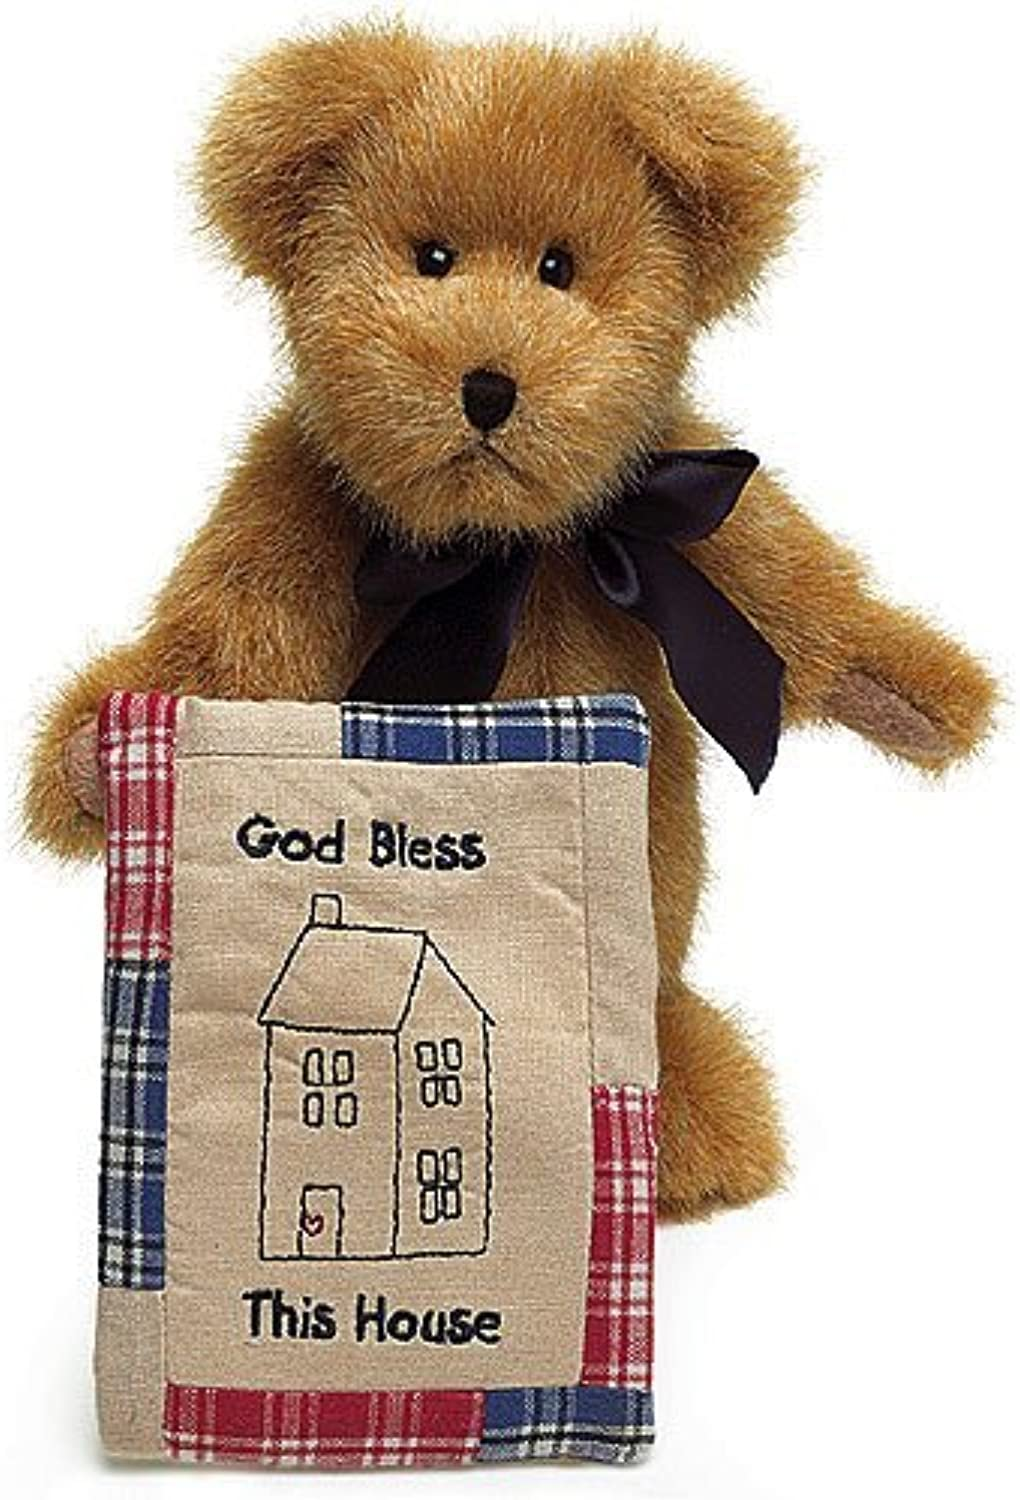 Boyds BearPeter God Bless This House by BOYDS BEARS PLUSH